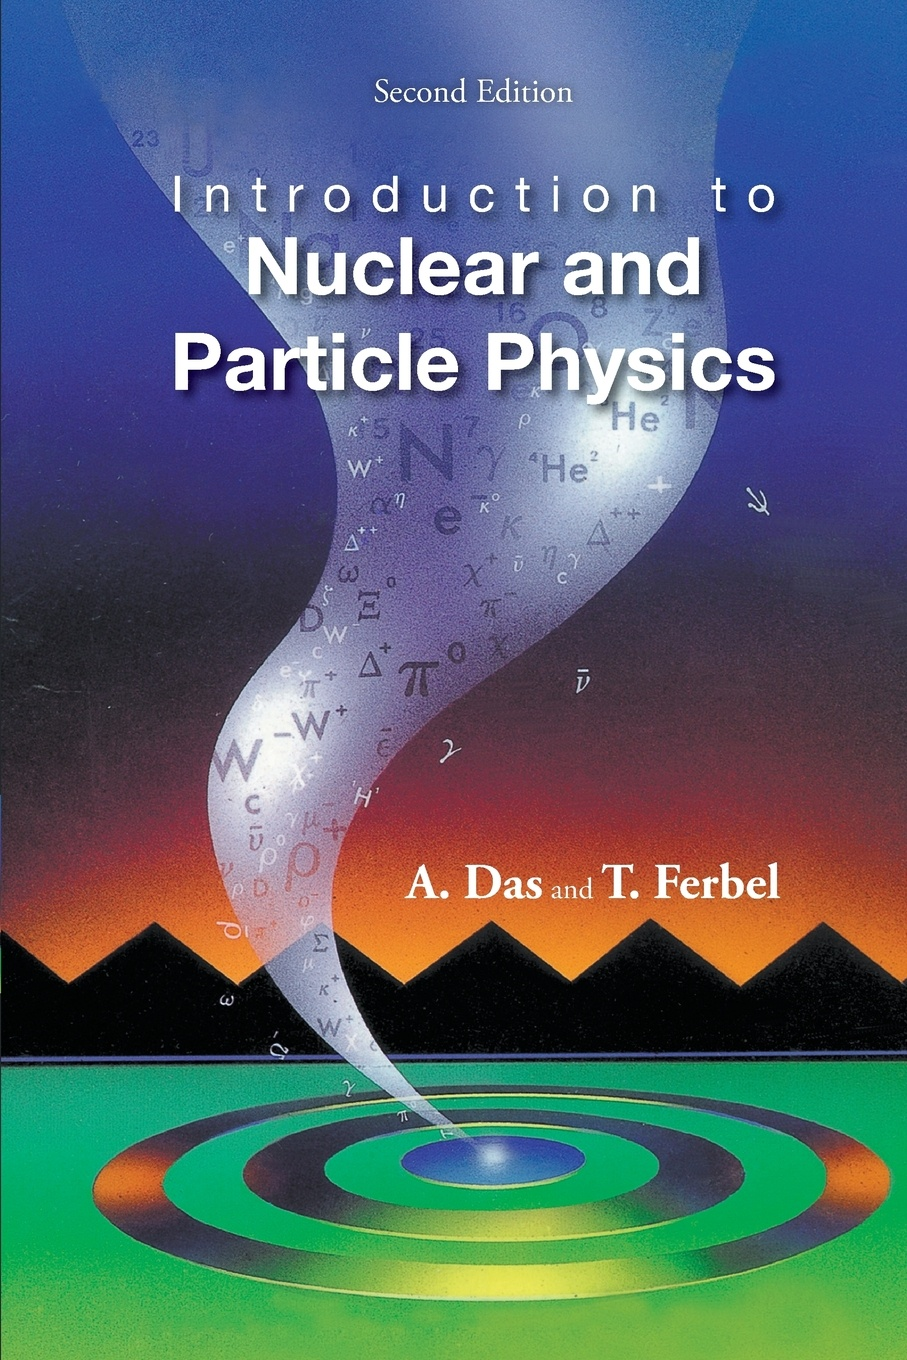 Ashok Das, Thomas Farbel, Thomas Ferbel Introduction to Nuclear and Particle Physics. 2nd Edition w heisenberg nuclear physics